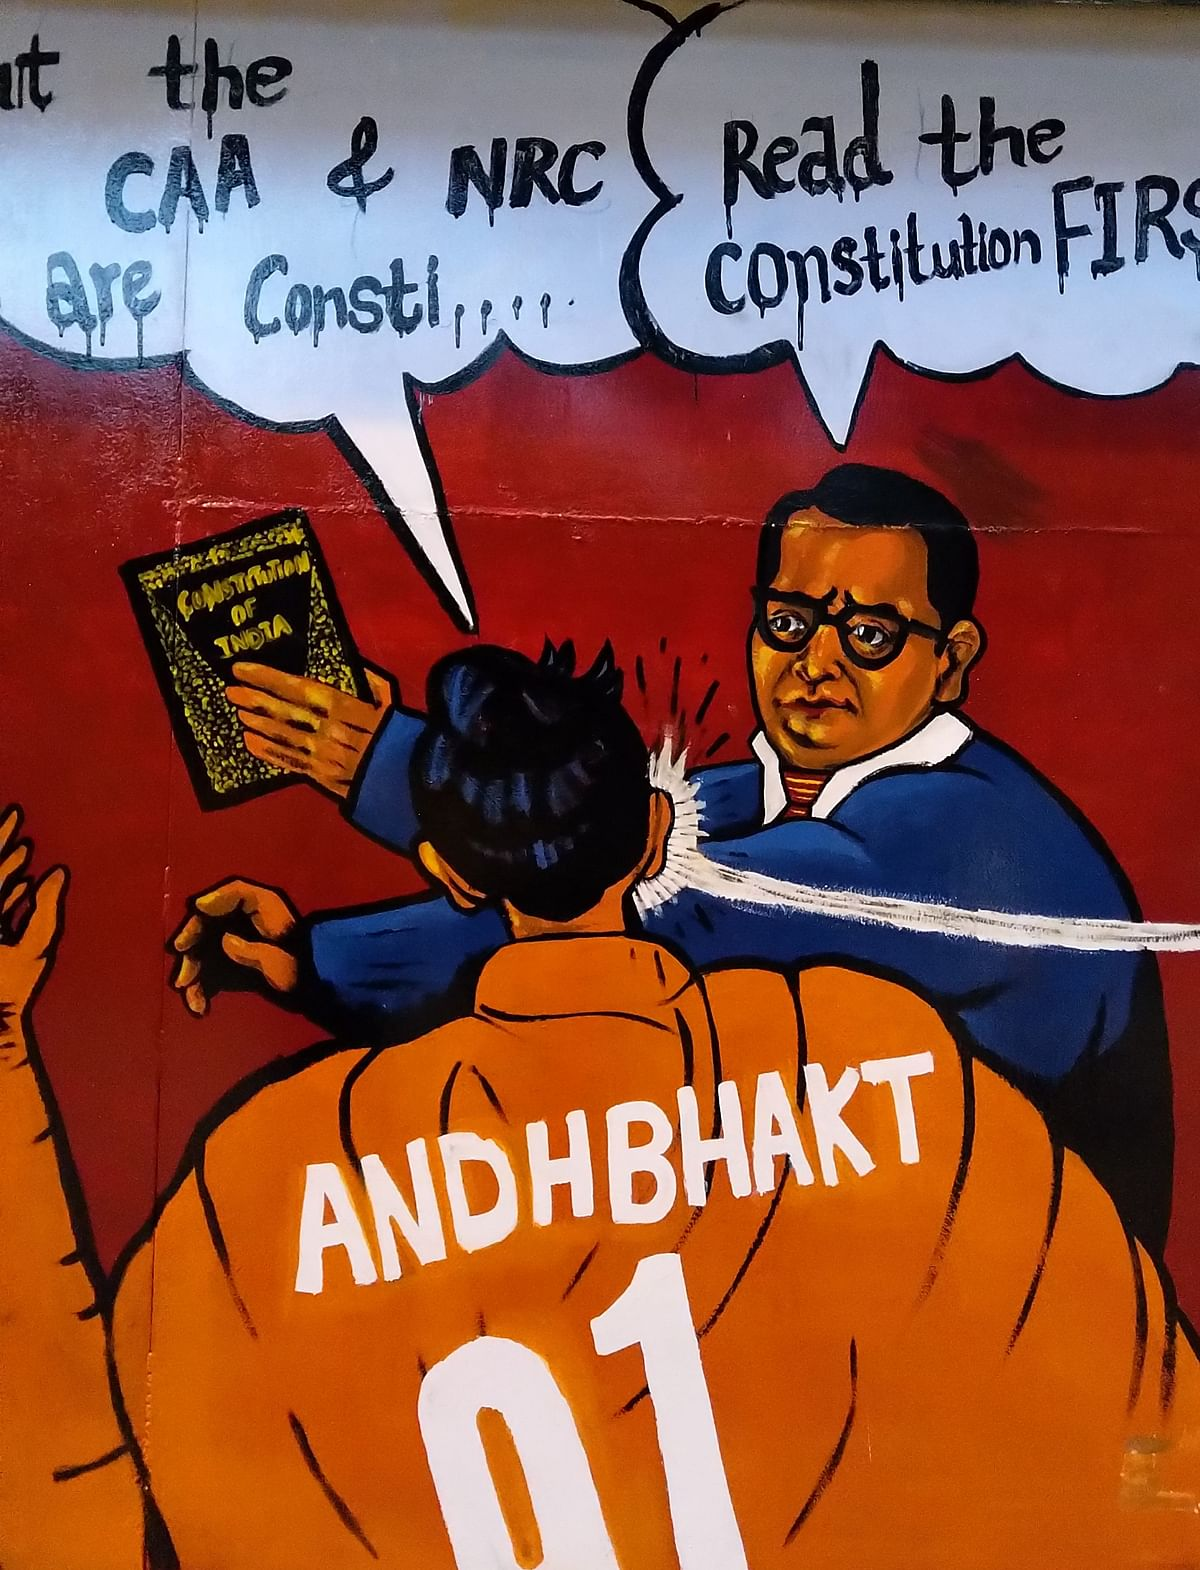 This artwork outside Jamia shows BR Ambedkar responding to the CAA with the Constitution.